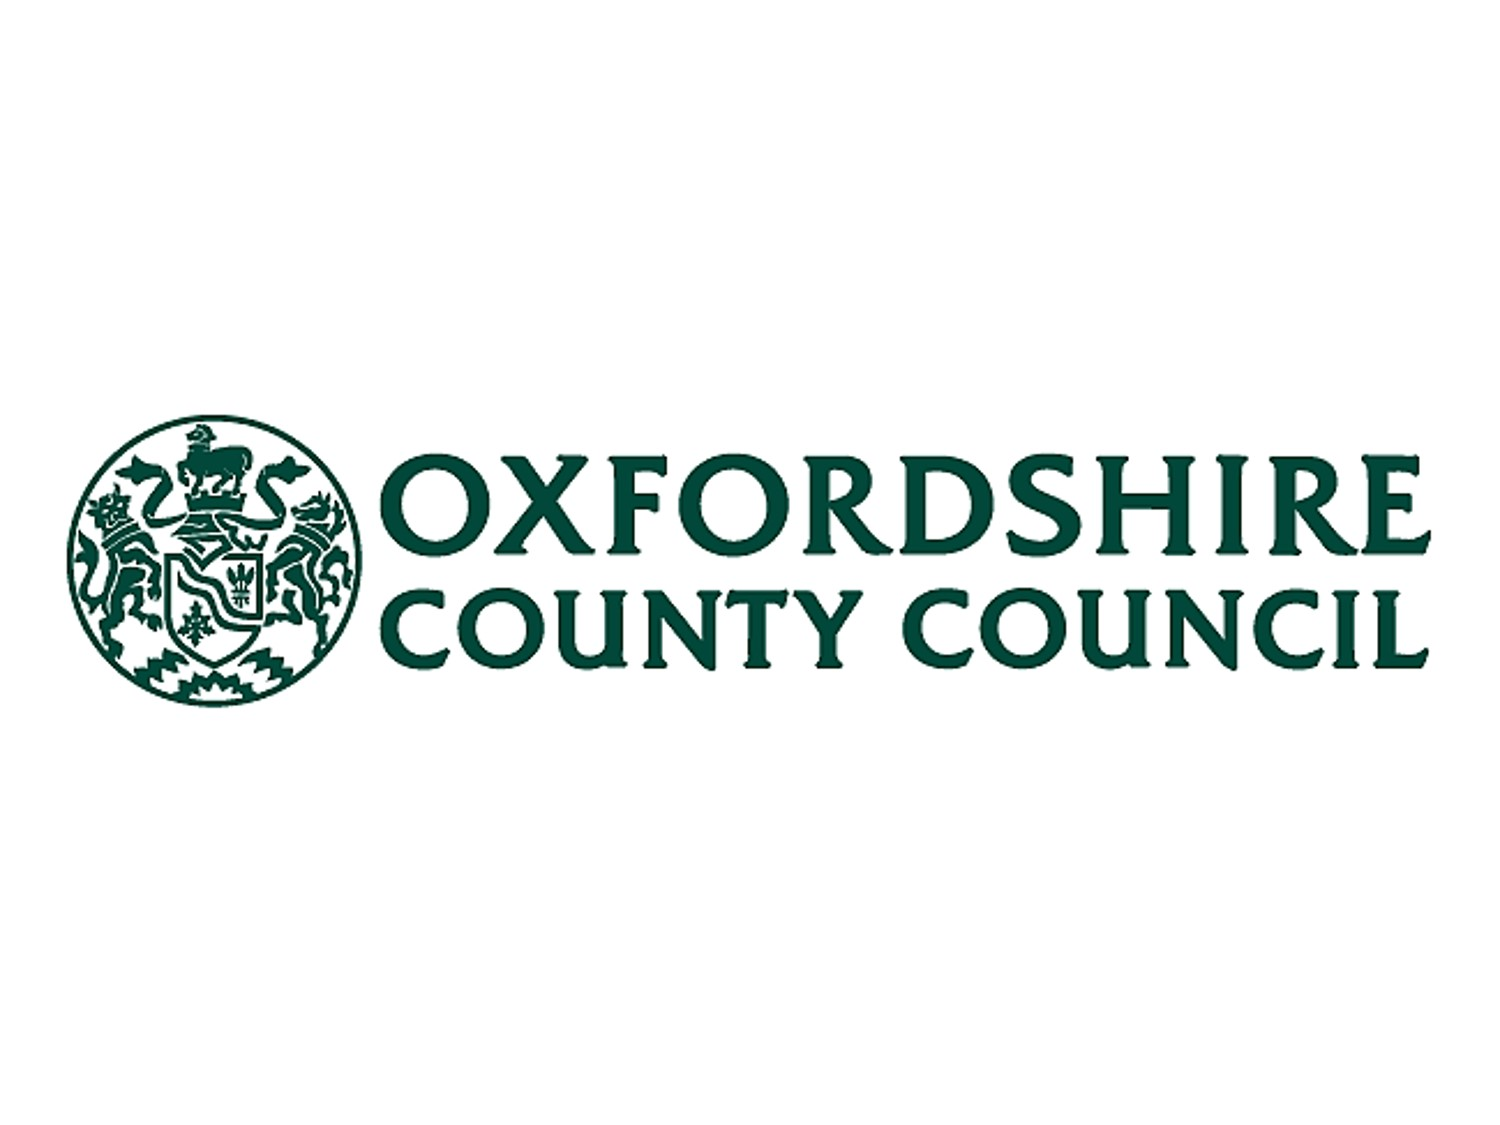 news from oxfordshire county council logos online school english logos online school curriculum